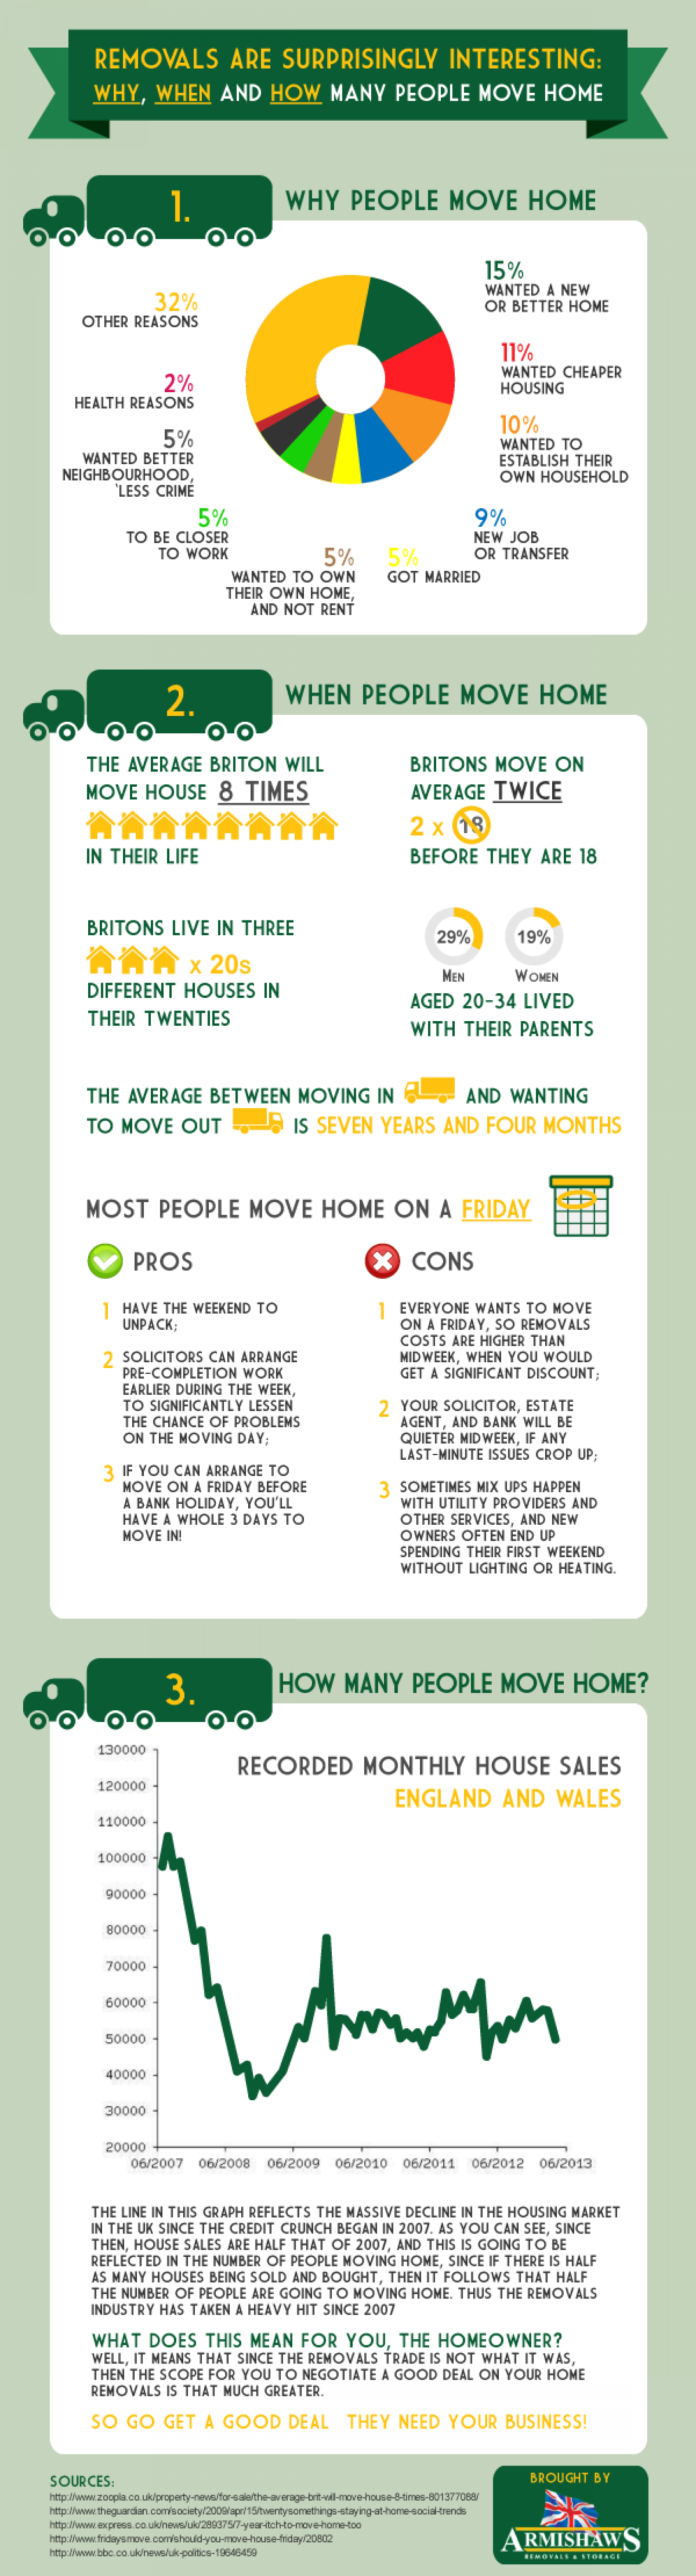 Why Removals Are Surprisingly Interesting Infographic